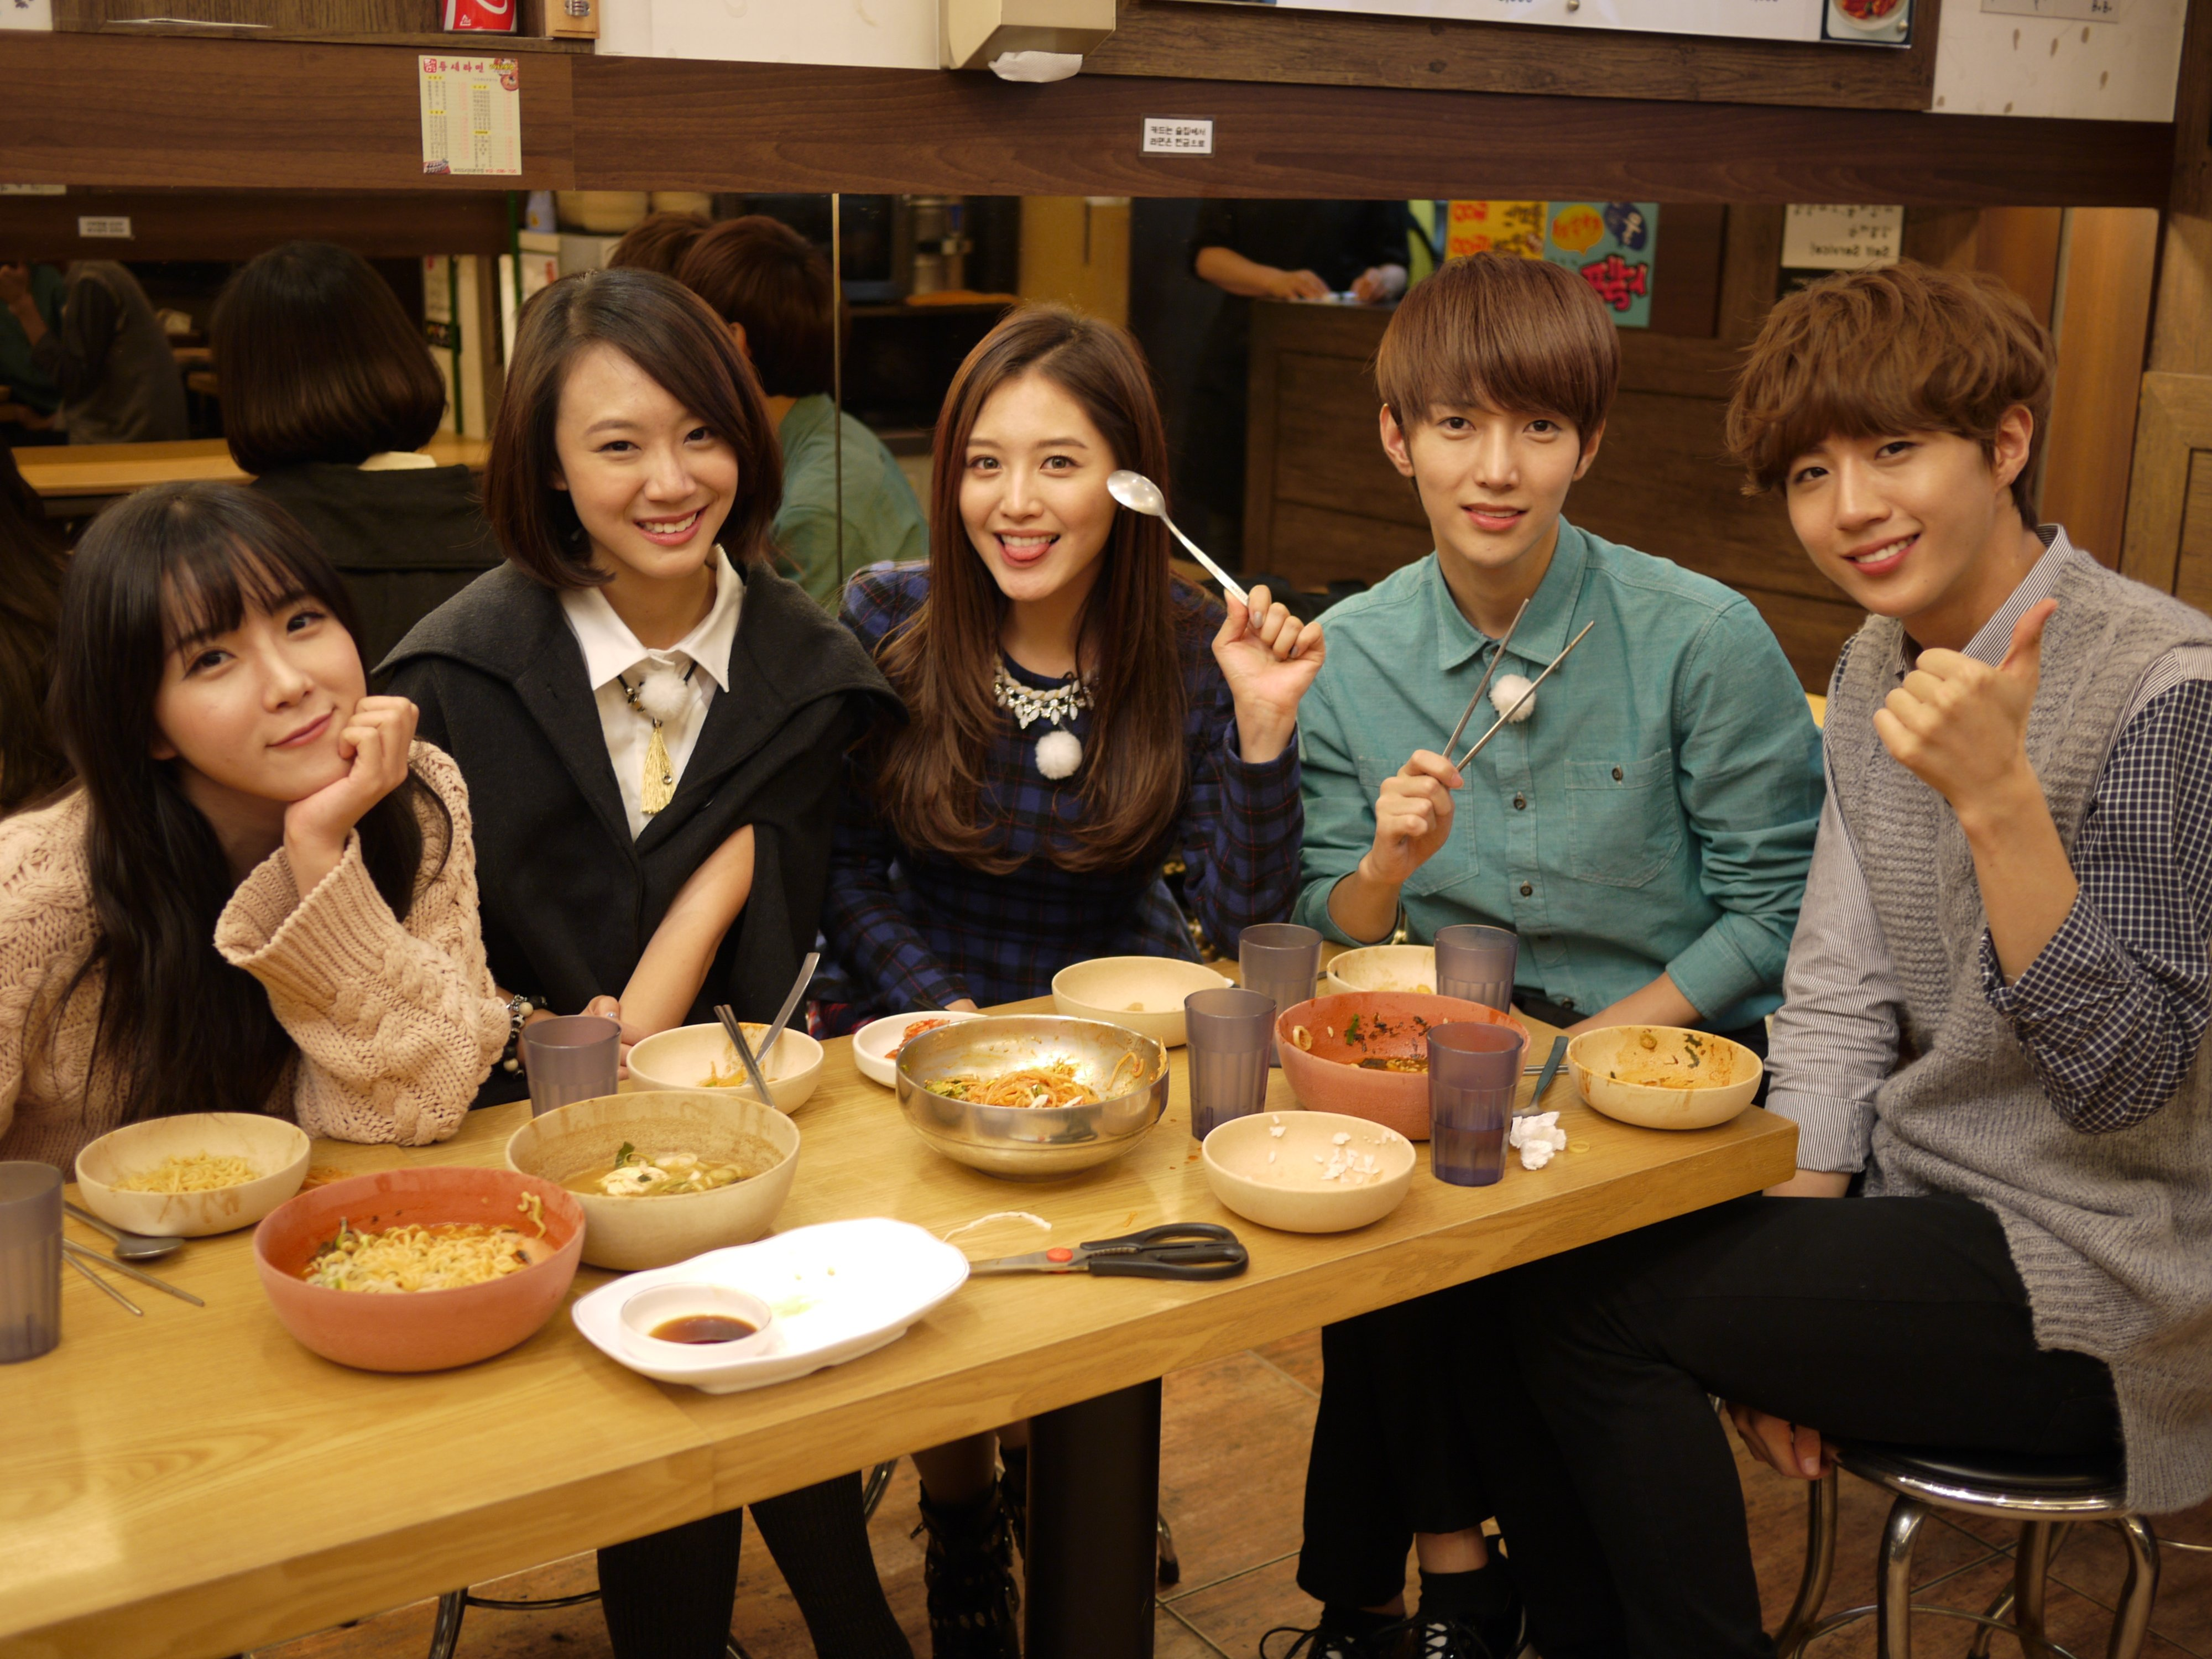 INTERVIEW] Julie Tan goes on A Date With K-POP Stars - HallyuSG